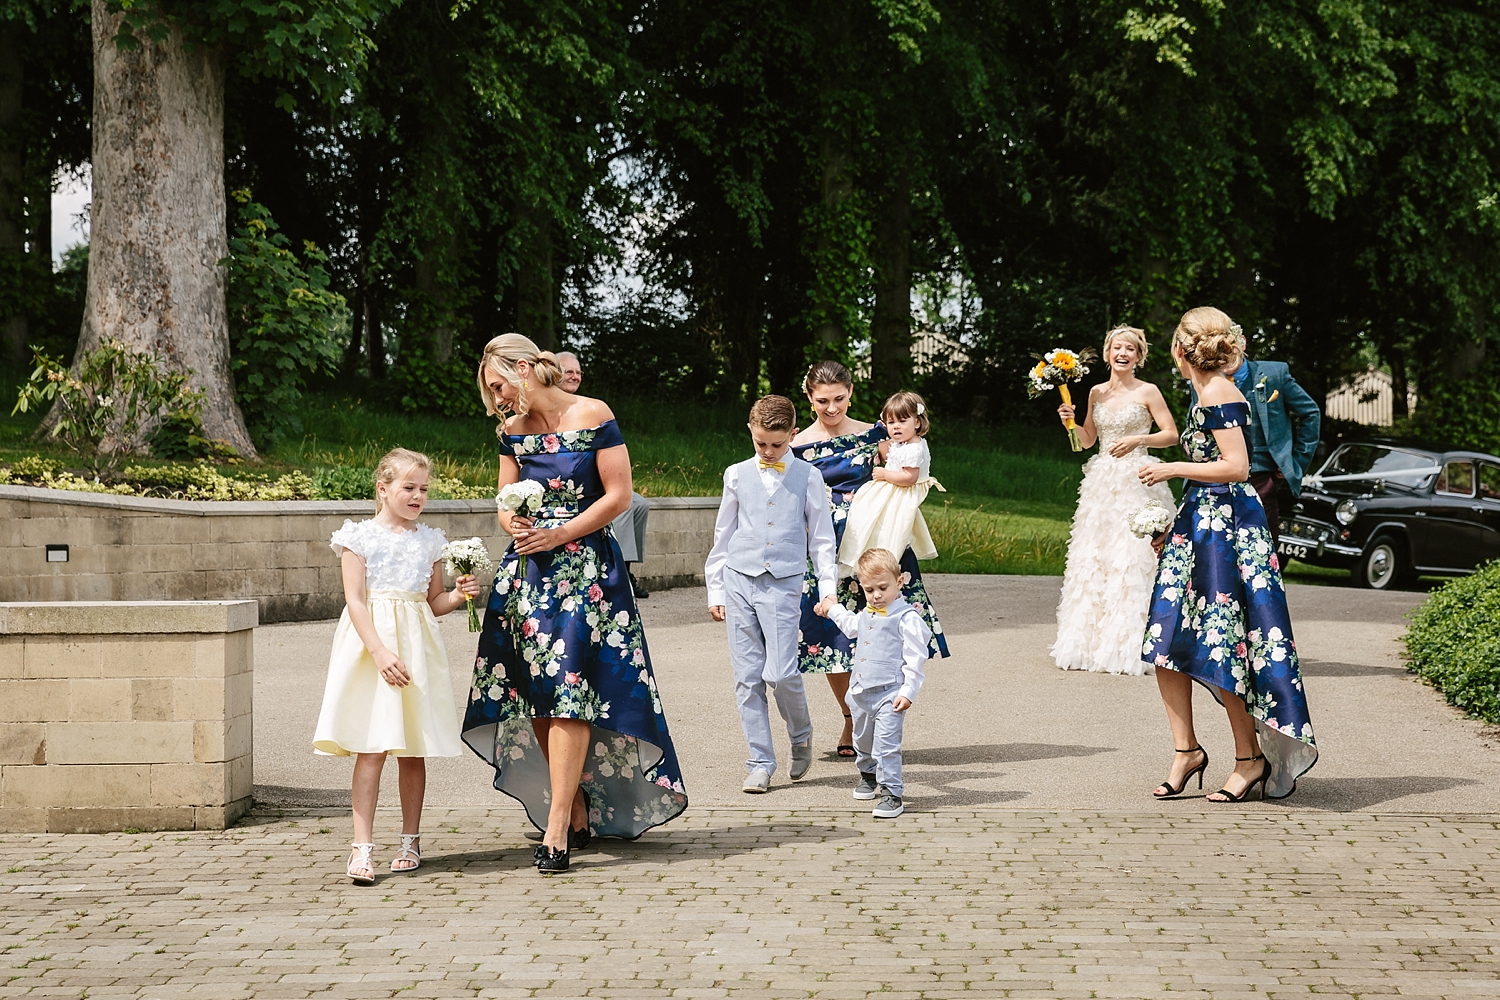 Natlie-Matthew-yorkshire-natural-relaxed-fun-documentary-reportage-candid-wedding-photography-photographer-Derby-Nottingham-Derbyshire-Nottinghamshire-Leicestershire-Lincolnshire-East-Midlands-37.jpg